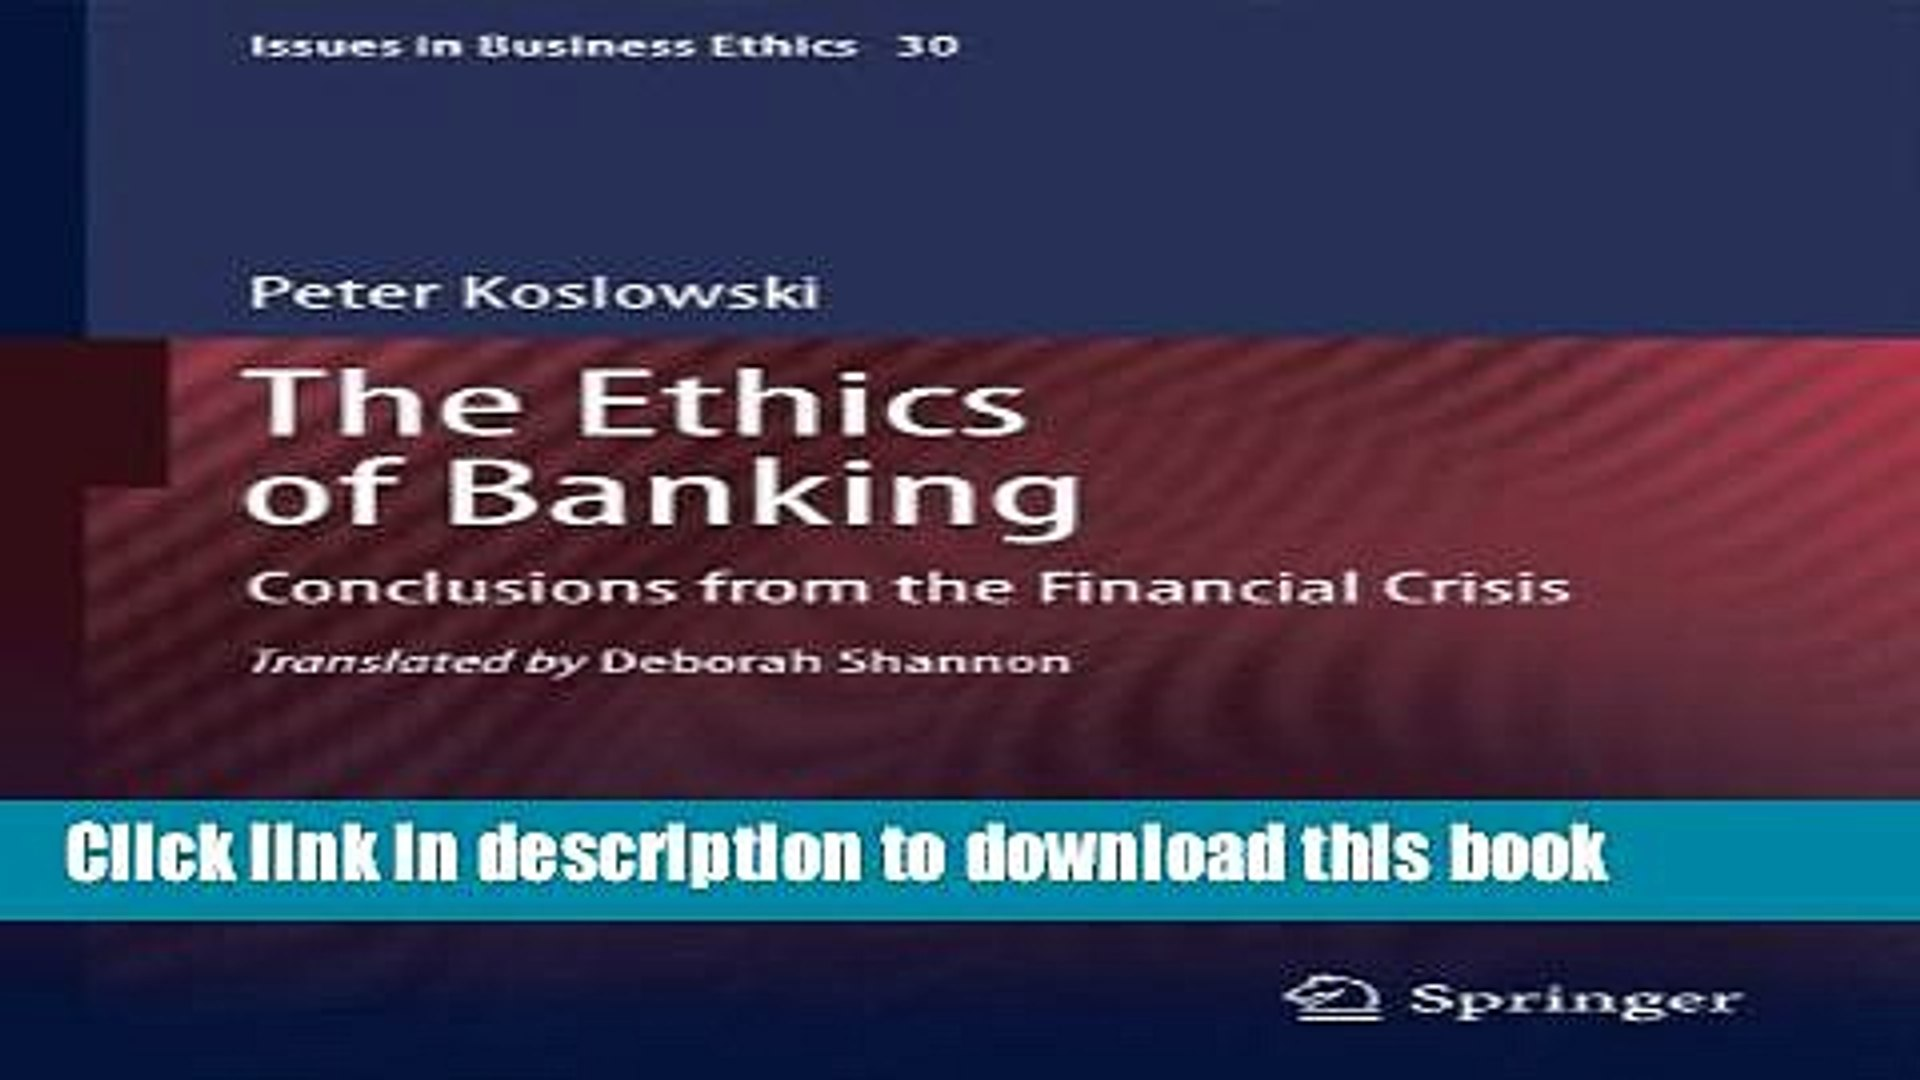 Ebook The Ethics of Banking: Conclusions from the Financial Crisis Full Online